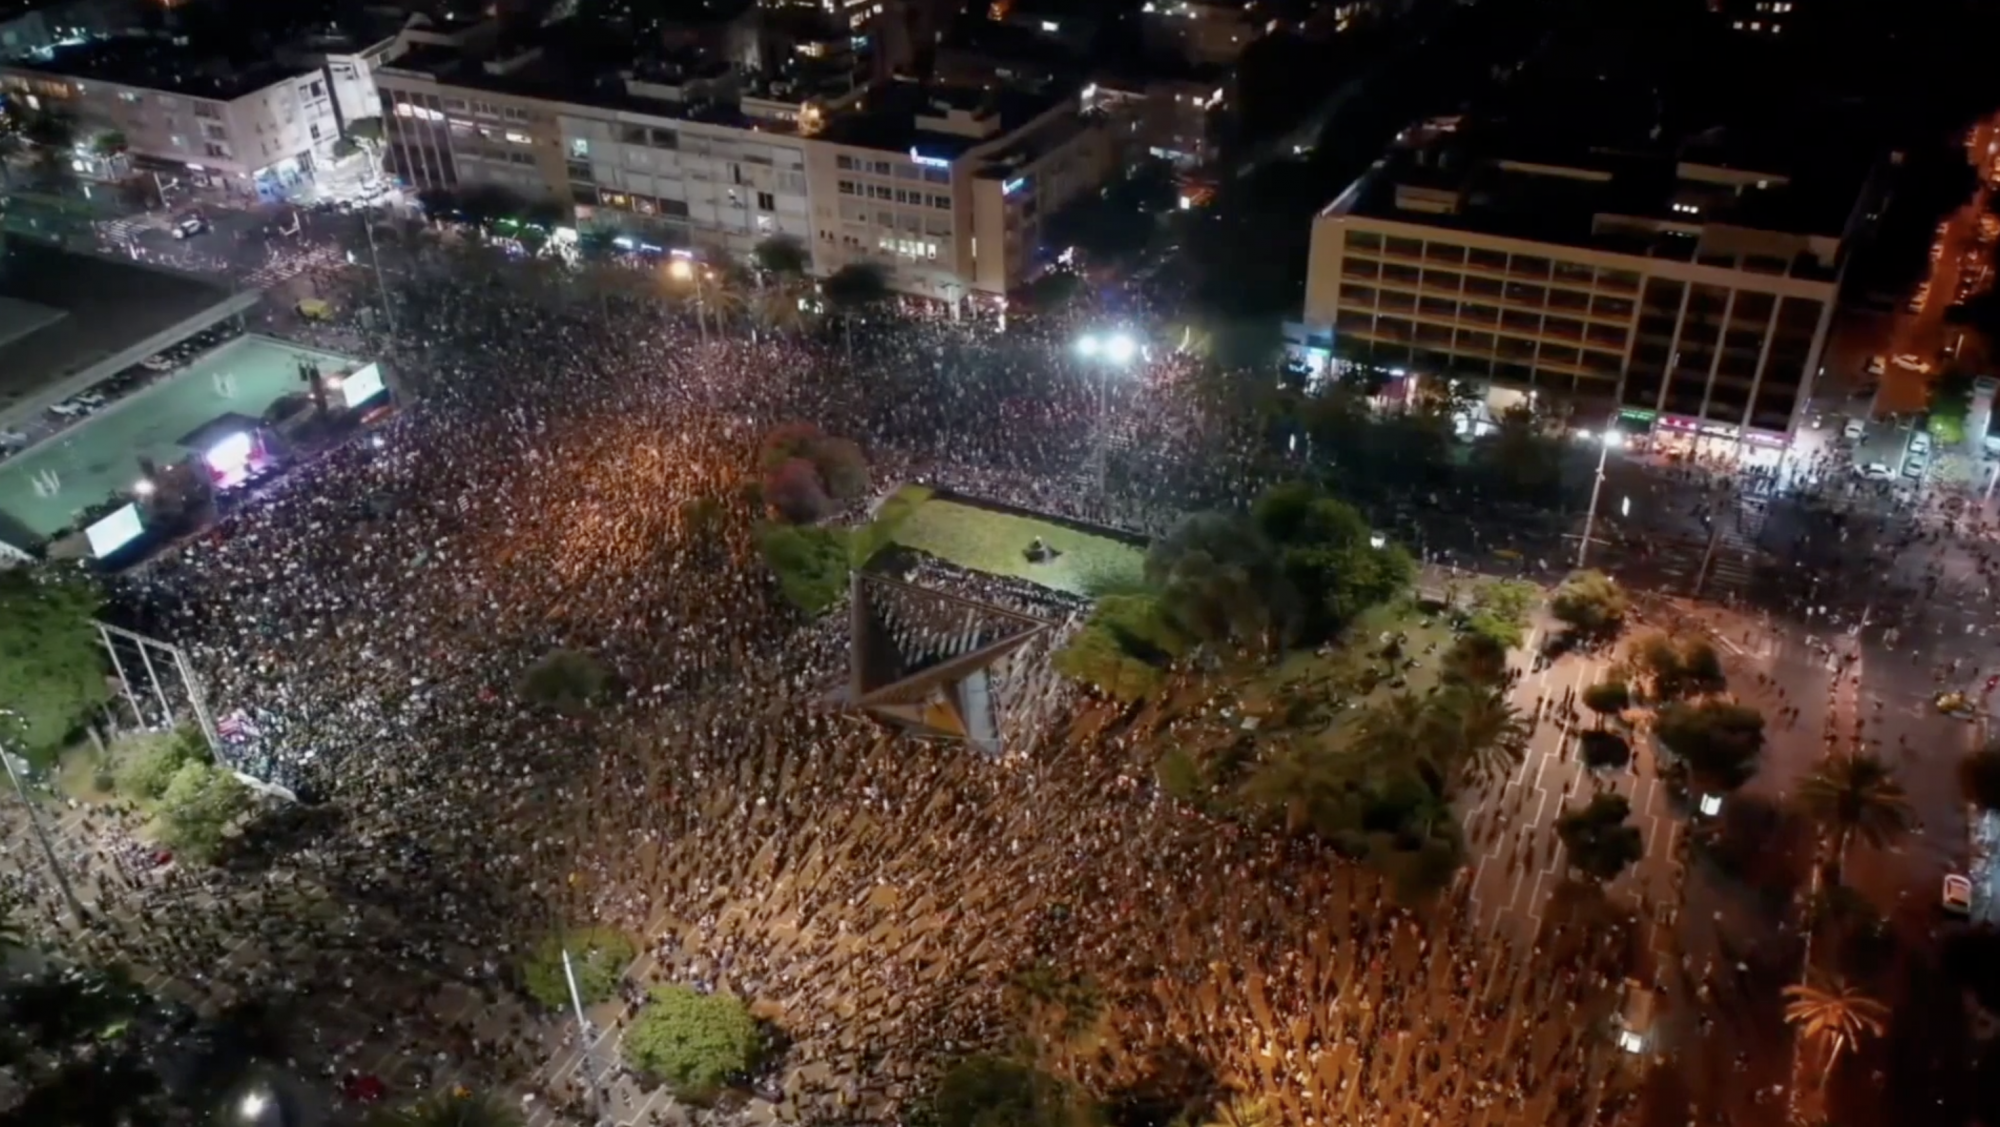 Thousands protest in the streets of Tel Aviv over the government's response to the pandemic - channel 4